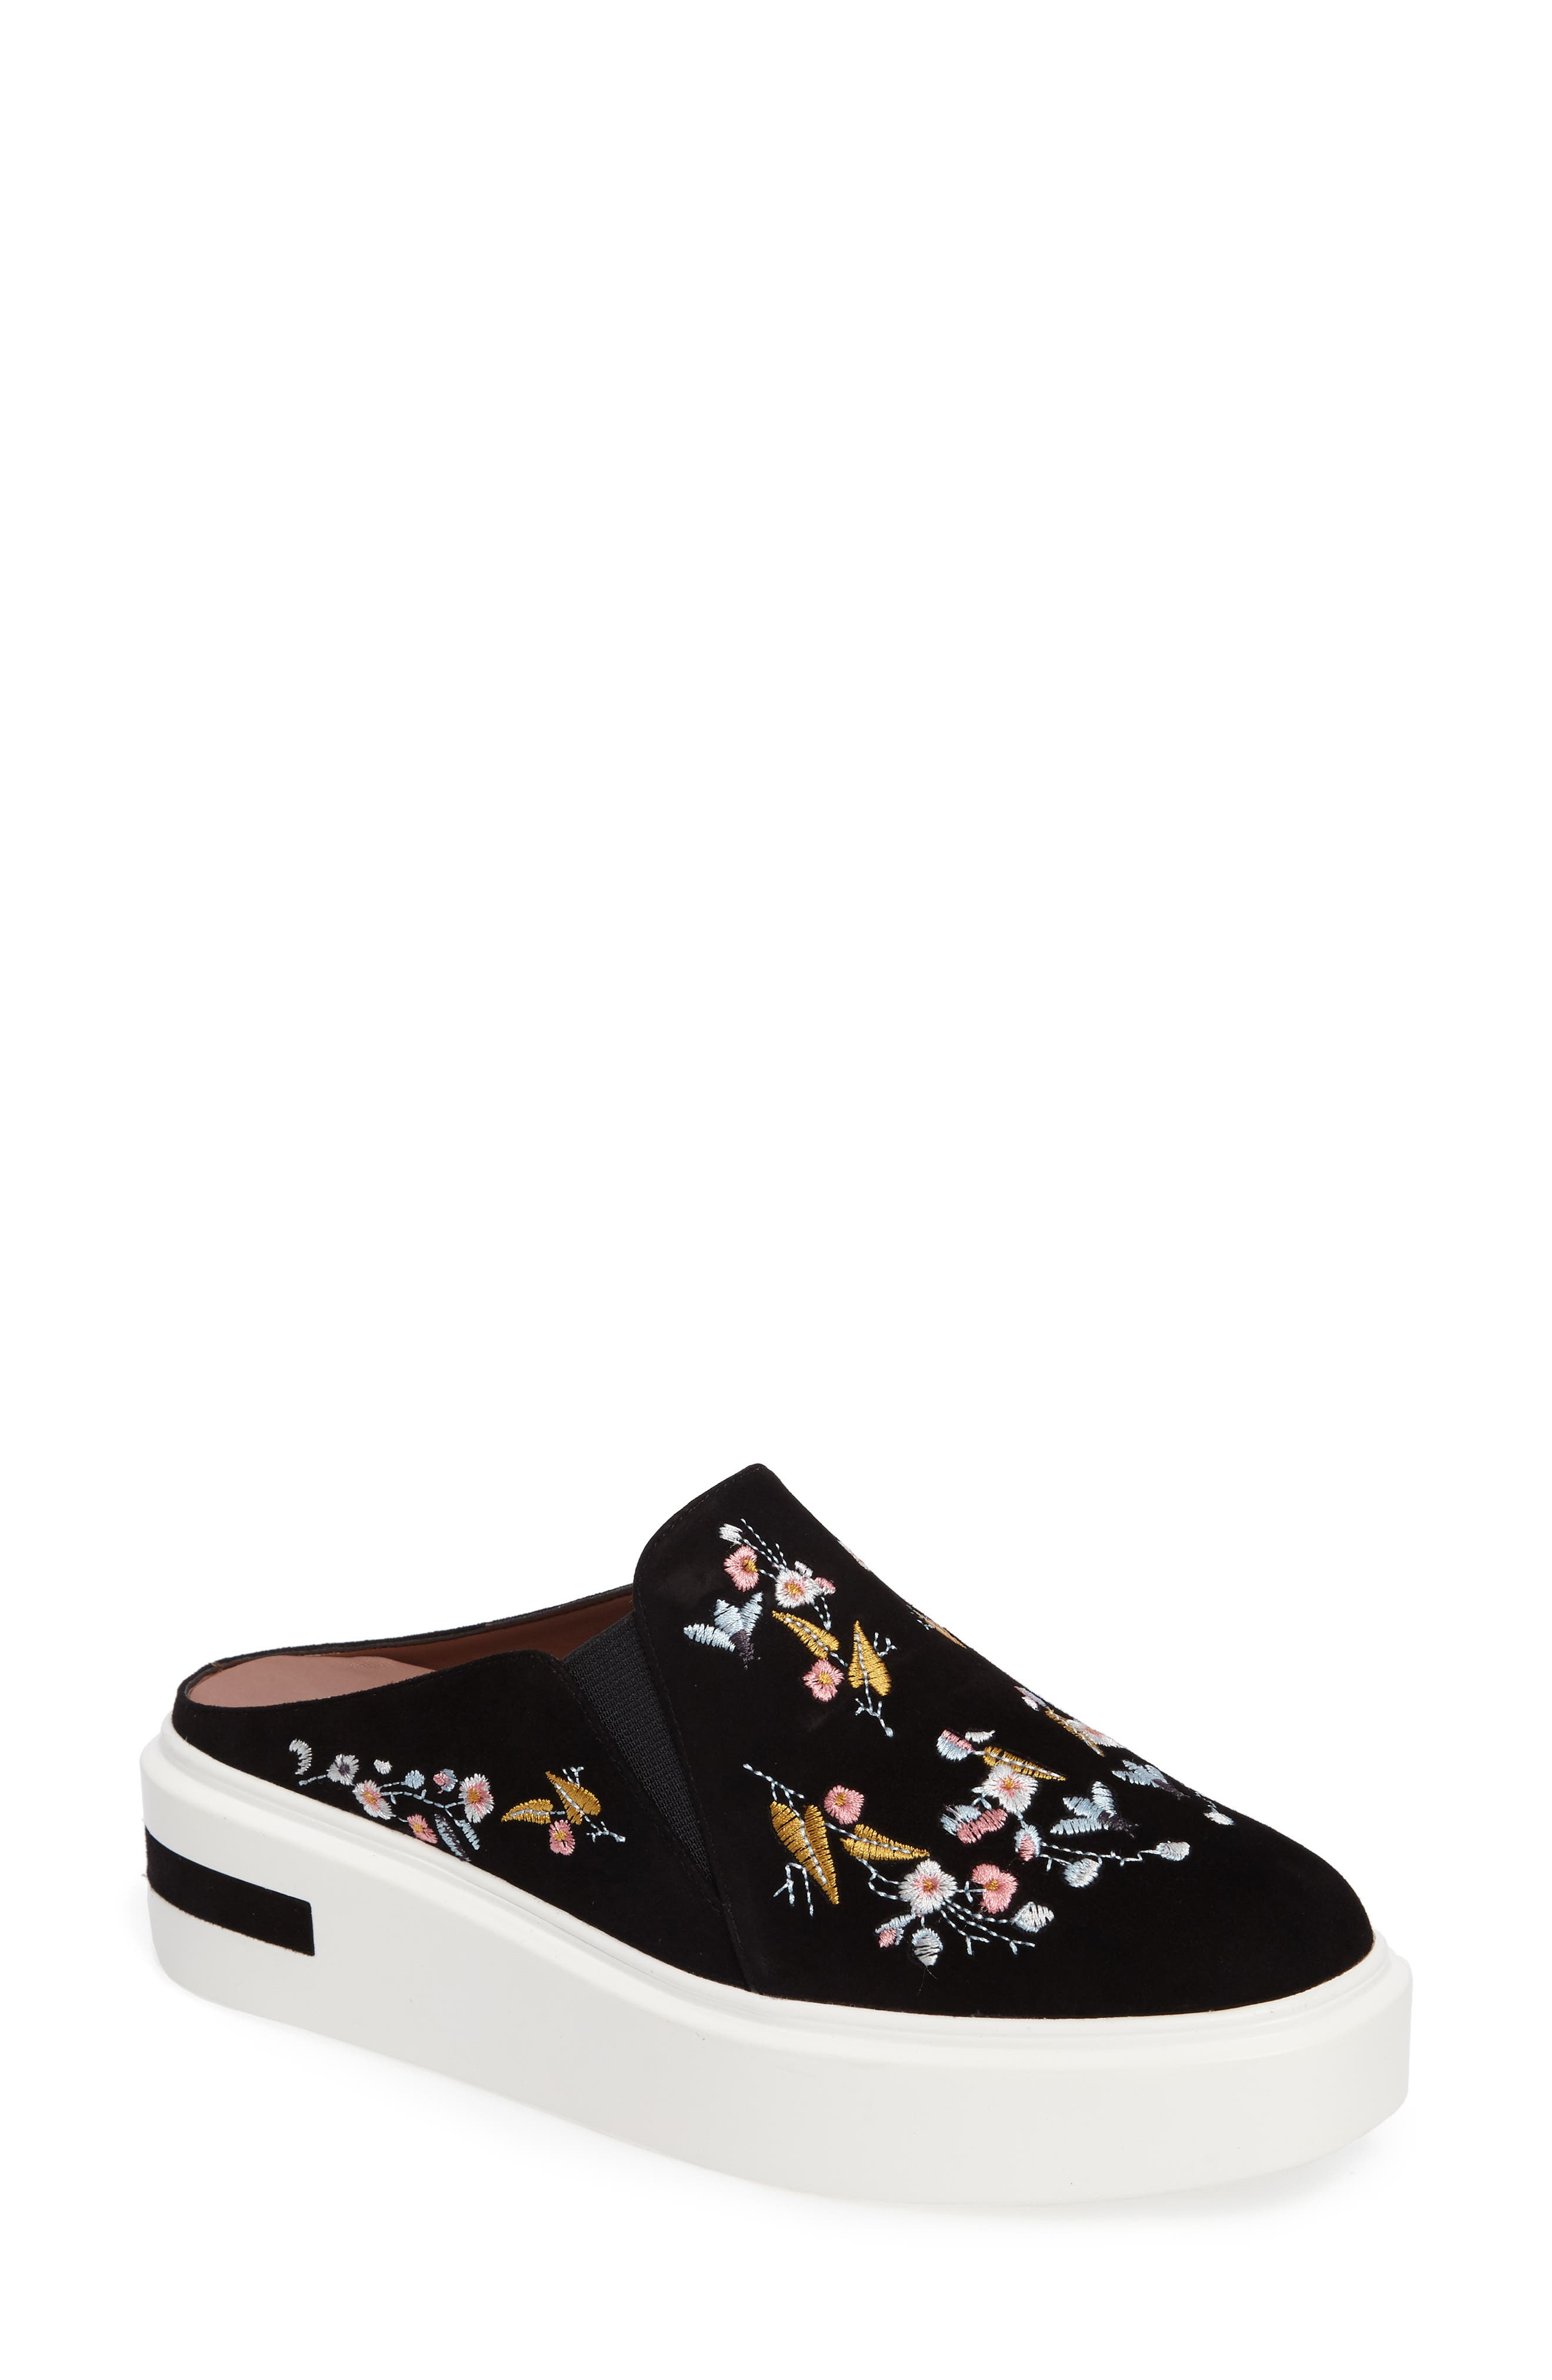 Alternate Image 1 Selected - Linea Paolo Fab II Embroidered Platform Sneaker (Women)